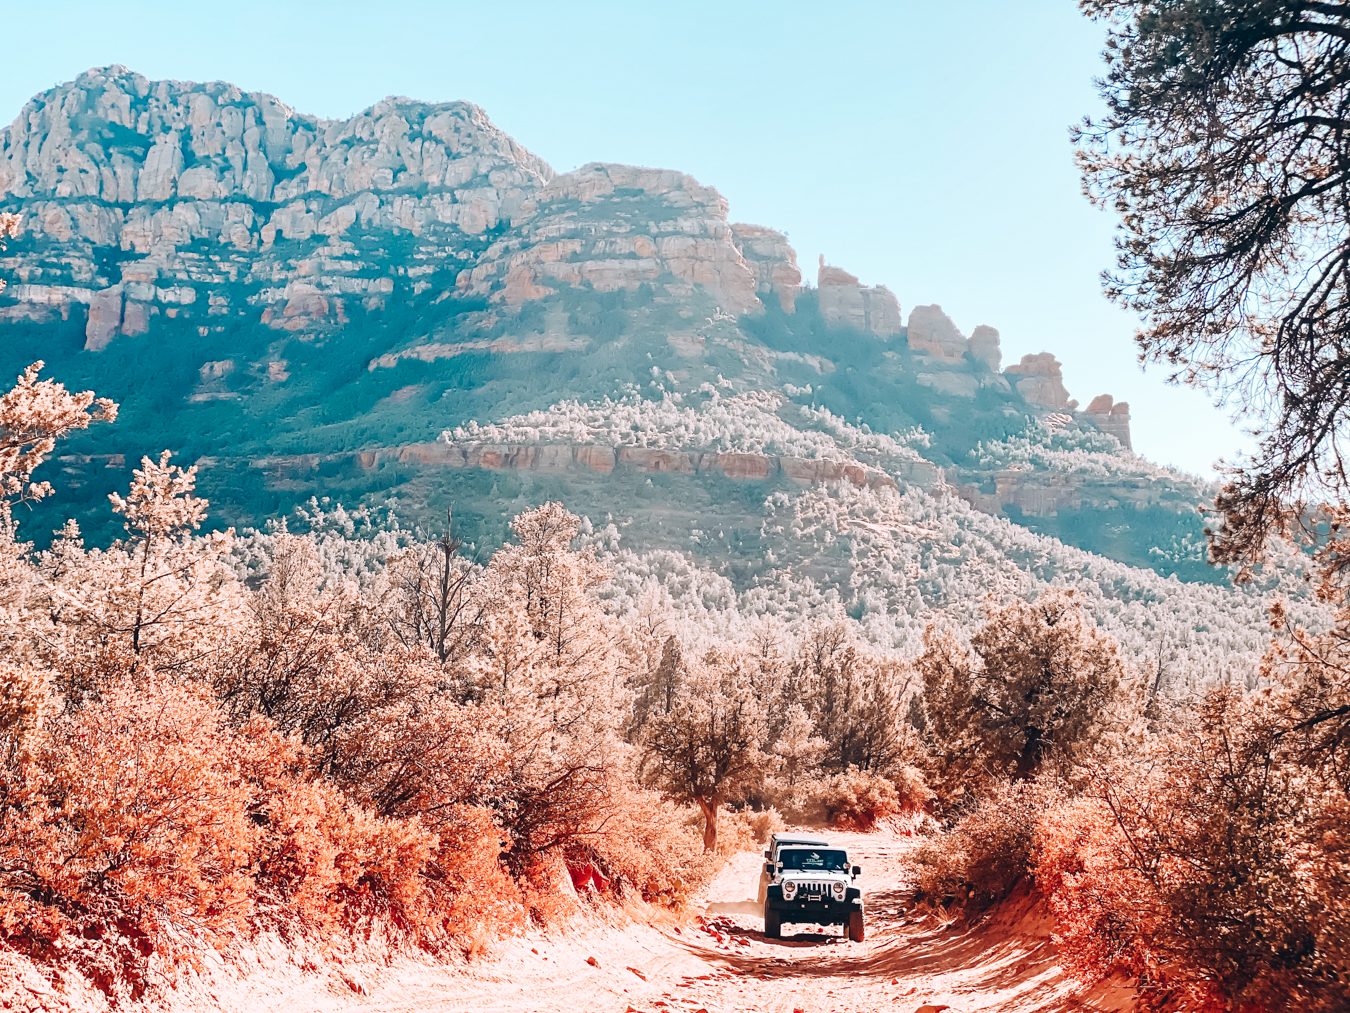 Car and road in Sedona